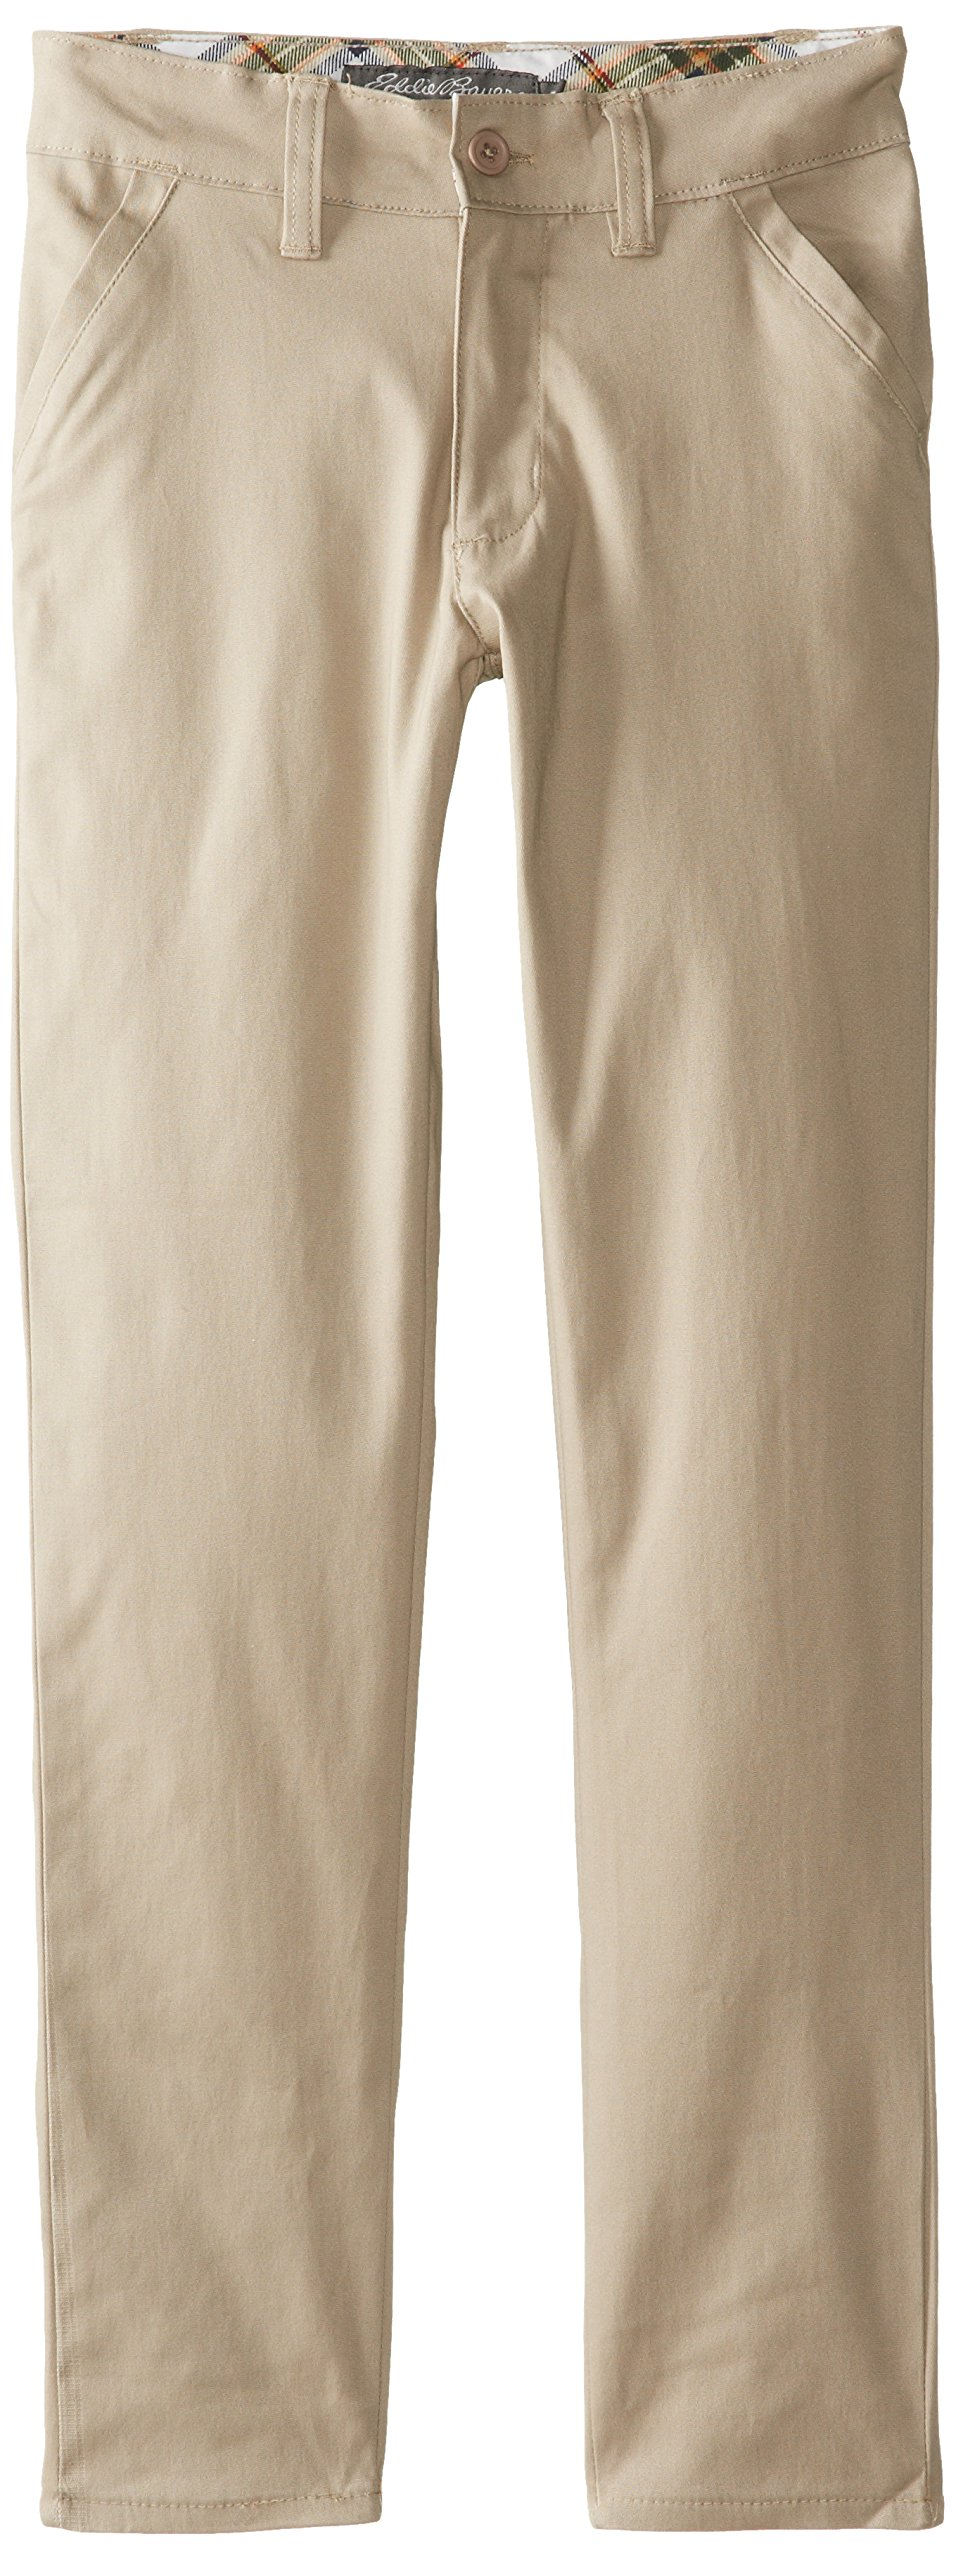 Eddie Bauer Girls' Twill Pant (More Styles Available), Soft Khaki, 16